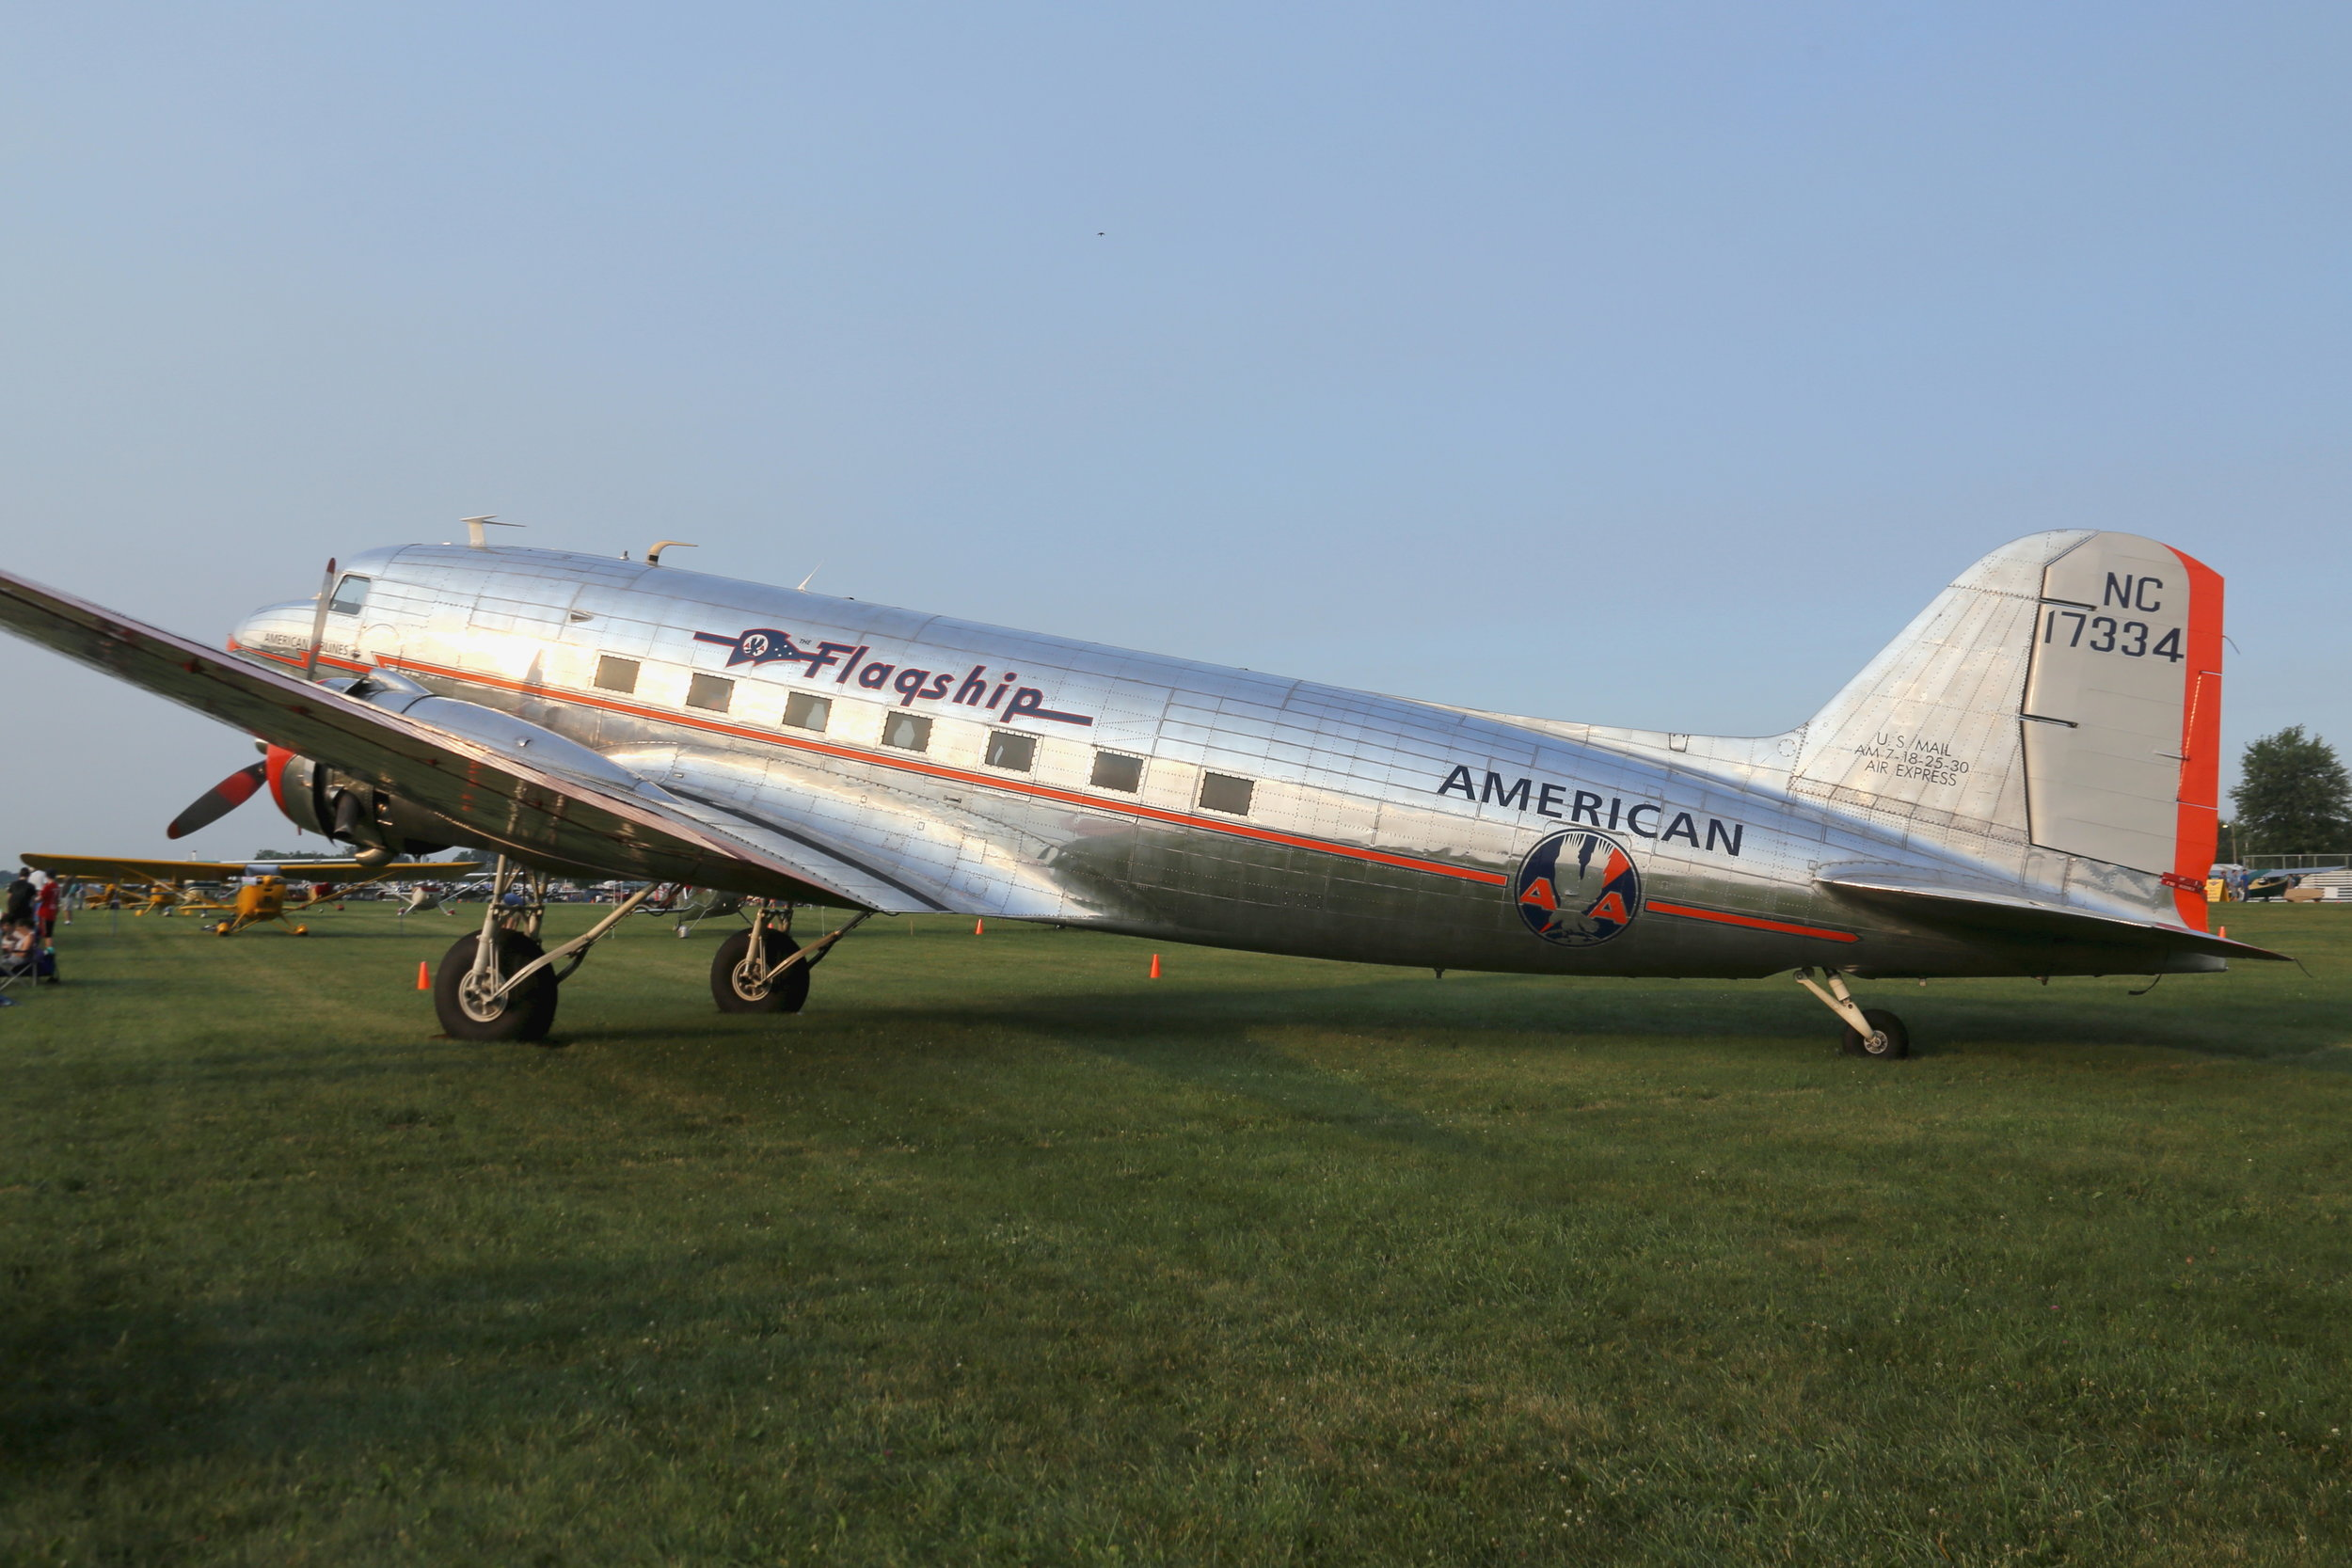 NC17334 American Airlines DC3 taken at Oshkosh 23rd July 2018 by John Wood